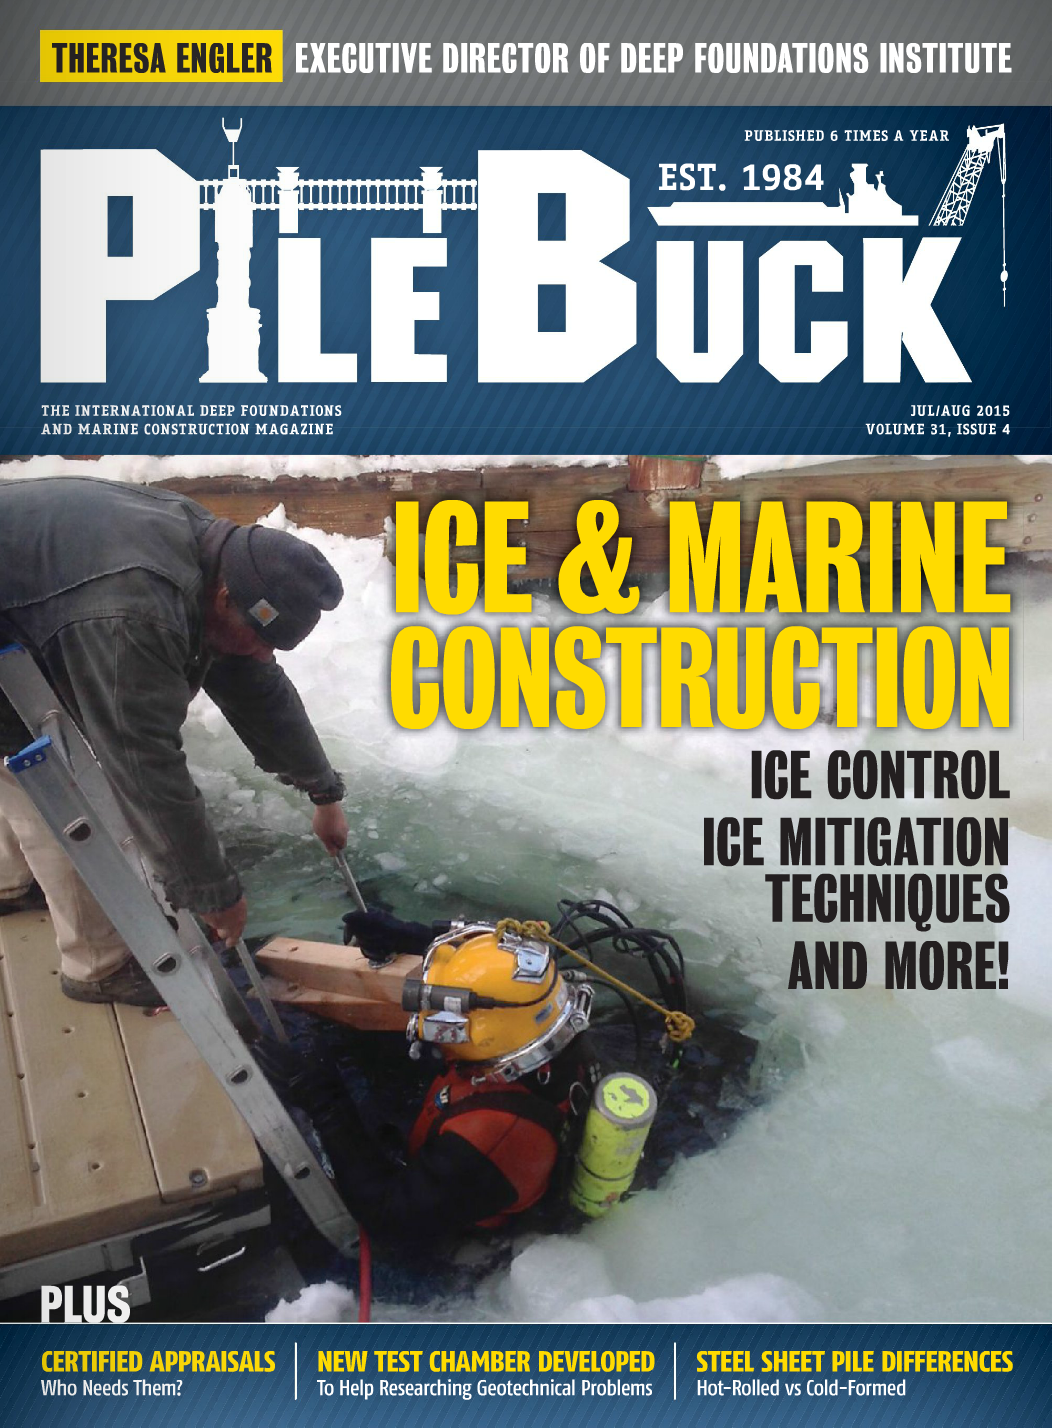 Issue 31-4 - Jul/Aug 2015